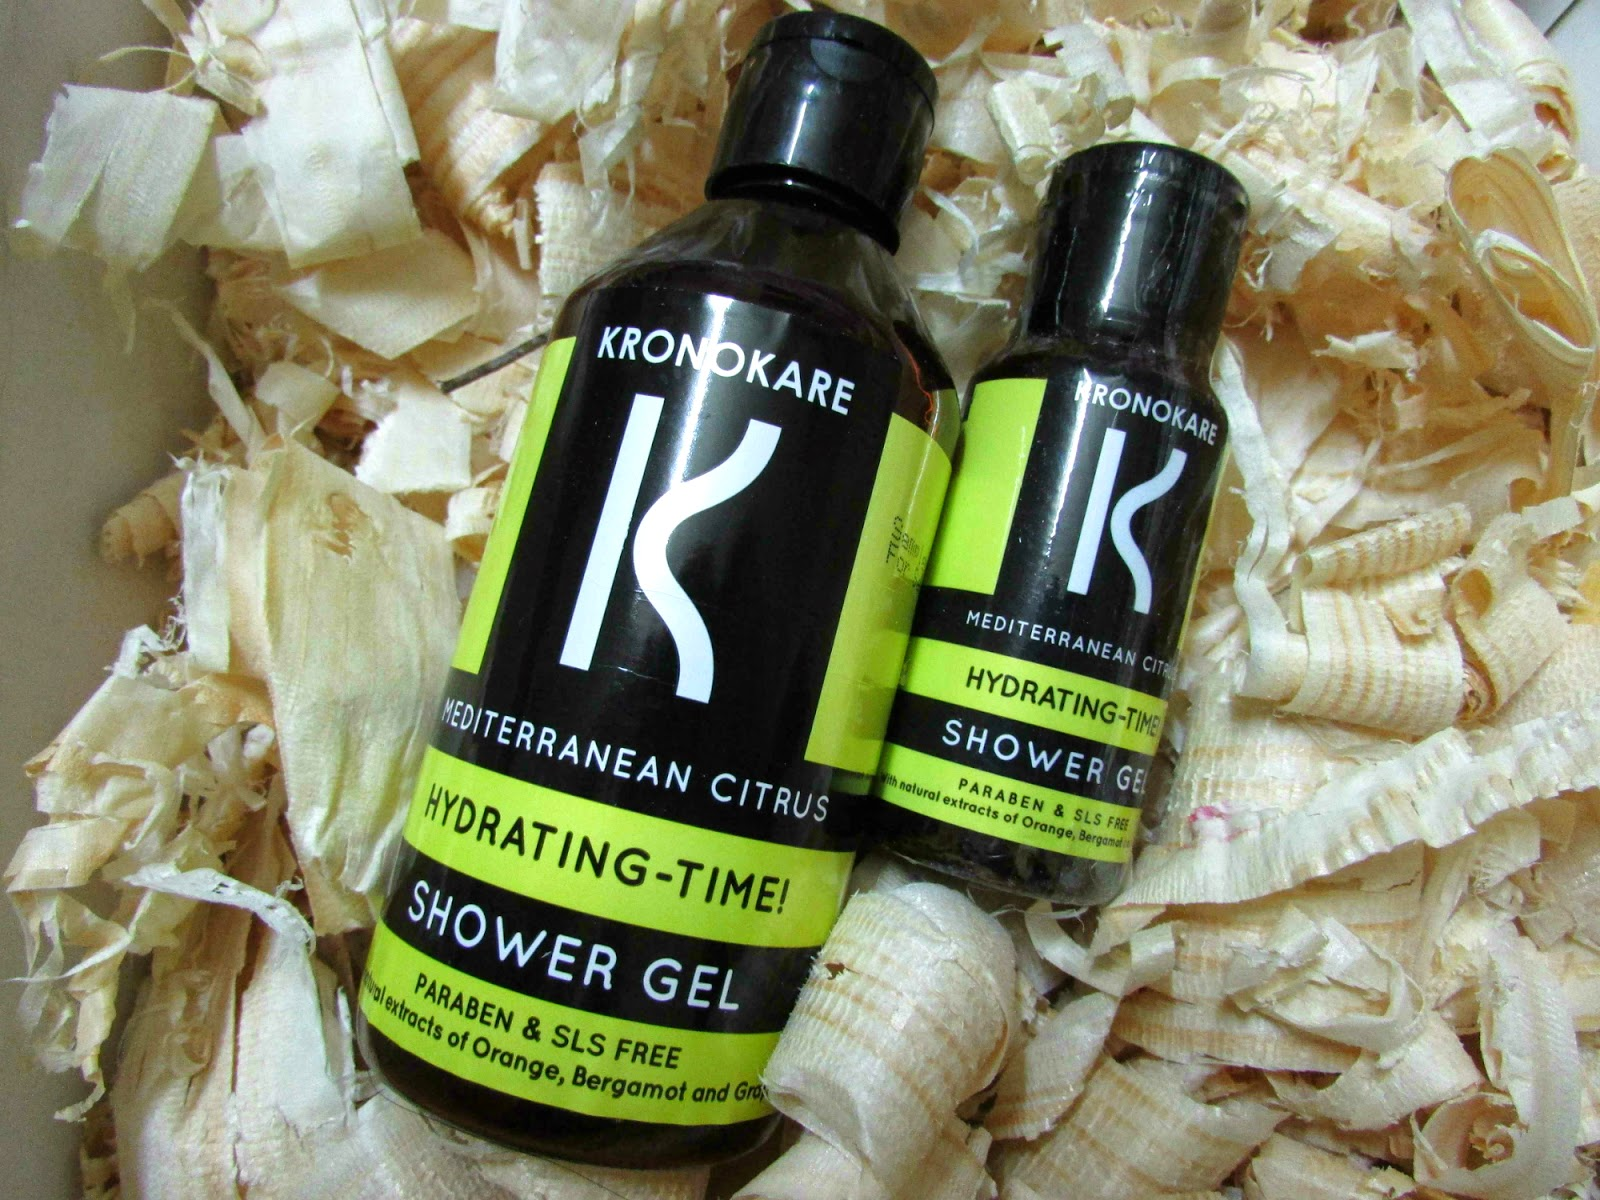 KRONOKARE Hydrating Time shower Gel,,Body wash, body wash review, body wash review india, body wash price, body wash price india, body wash price and review, body wash price and review india, shower gel , shower gel review, shower gel review india, shower gel price, shower gel price india, shower gel price and review, shower gel price and review india, how to use shower gel, how to use body wash, how to use shower gel without loofa , how to use shower gel with hands, how to use body wash without loofa, how to use body wash with hands, how to use body wash with loofa, how to use shower gel with loofa, best shower gel, worst shower gel, best body wash, worst body wash,how to take bath with body wash, how to take bath with shower gel, how to take bath without soap, how to take bath, how to take shower, how to clean body, economical shower gel, economical body wash, KRONOKARE shower gel, KRONOKARE body wash , palmolive shower gel review, palmolive shower gel review india, palmolive shower gel price, palmolive shower gel price india, palmolive body wash ,palmolive body wash review, KRONOKARE body wash review india, KRONOKARE body wash price, KRONOKARE body wash price india, KRONOKARE body wash review and price india, KRONOKARE shower gel review and price, KRONOKARE body wash review and price india, KRONOKARE shower gel review and price india, KRONOKARE aroma absolute relax shower gel, KRONOKARE Mediterranean Citrus body wash, KRONOKARE Mediterranean Citrus shower gel review, KRONOKARE Mediterranean Citrus shower gel review india, KRONOKARE Mediterranean Citrus shower gel price, KRONOKARE Mediterranean Citrus shower gel price india, KRONOKARE Mediterranean Citrus shower gel price and review, KRONOKARE Mediterranean Citrus shower gel price and review india, KRONOKARE Mediterranean Citrus body wash review, KRONOKARE Mediterranean Citrus body was, KRONOKARE Mediterranean Citrus body wash review india, KRONOKARE Mediterranean Citrus price, KRONOKARE Mediterranean Citrus body wash price india, KRONOKARE Mediterranean Citrusreview and price, KRONOKARE Mediterranean Citrus price and review india, KRONOKARE Mediterranean Citrus soap, , KRONOKARE india, KRONOKARE Mediterranean Citrus , KRONOKARE Mediterranean Citrus shower gel, KRONOKARE Mediterranean Citrus  review, KRONOKARE Mediterranean Citrus  gel price, KRONOKARE Mediterranean Citrus  india, KRONOKARE Mediterranean Citrus shower gel review india, KRONOKARE Mediterranean Citrus shower gel price and review india, shower gel with herbal oil, shower gel with essential oil, shower gel with iris extract, shower gel with foam, shower gel that lathers, moisturising shower gel, hydrating shower gel, moisturising body wash, hydrating body wash, most moisturising body wash, most hydrating body wash, most moisturising shower gel,most hydrating shower gel, is using body wash good, is using shower gel good,Is using body wash hygienic, is using shower gel hygienic,beauty , fashion,beauty and fashion,beauty blog, fashion blog , indian beauty blog,indian fashion blog, beauty and fashion blog, indian beauty and fashion blog, indian bloggers, indian beauty bloggers, indian fashion bloggers,indian bloggers online, top 10 indian bloggers, top indian bloggers,top 10 fashion bloggers, indian bloggers on blogspot,home remedies, how to, at home spa, spa therepy bofy wash,